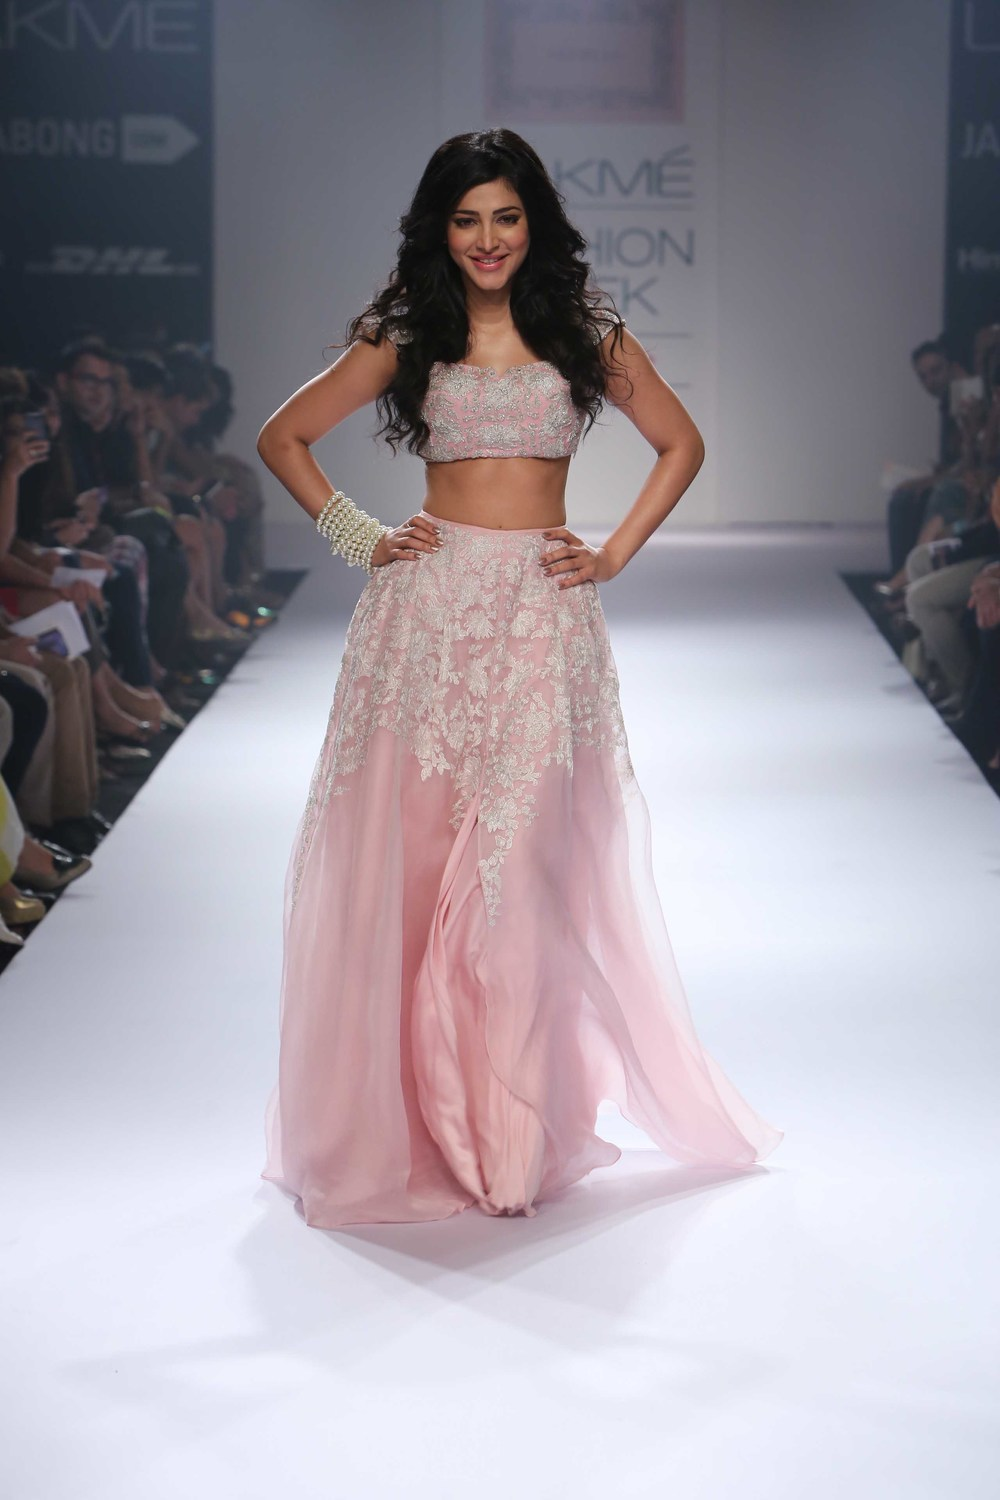 Shruti Hassan walks for Shehla Khan